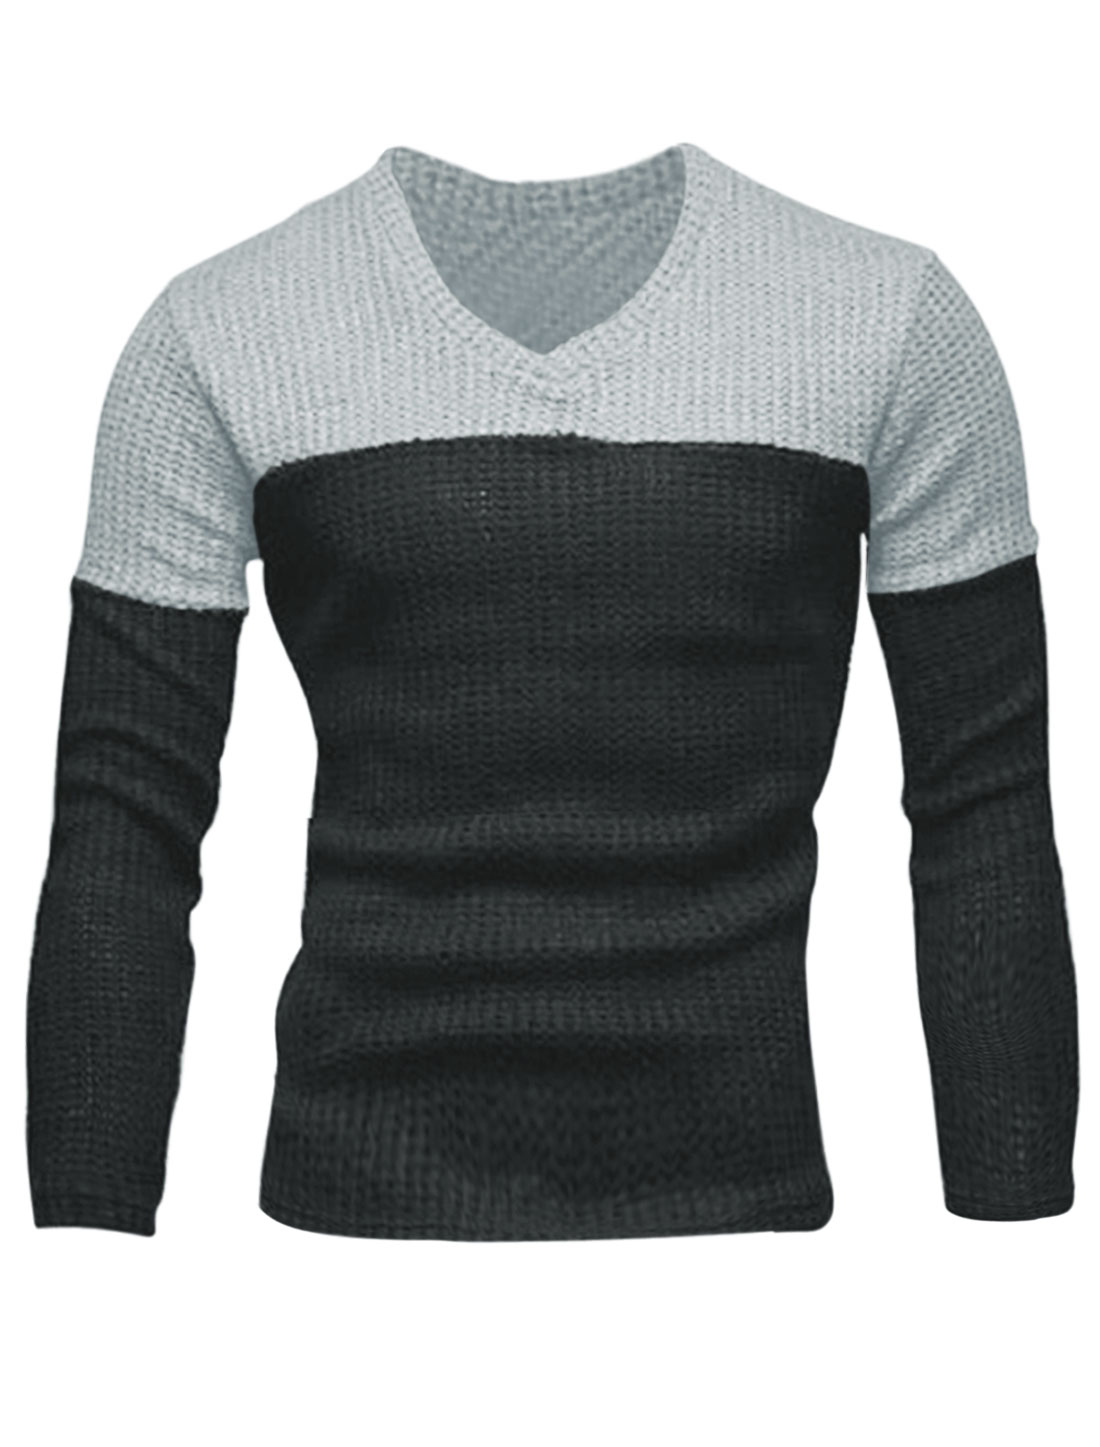 Men Fashion Style Color Block Slipover Casual Sweater Gray M